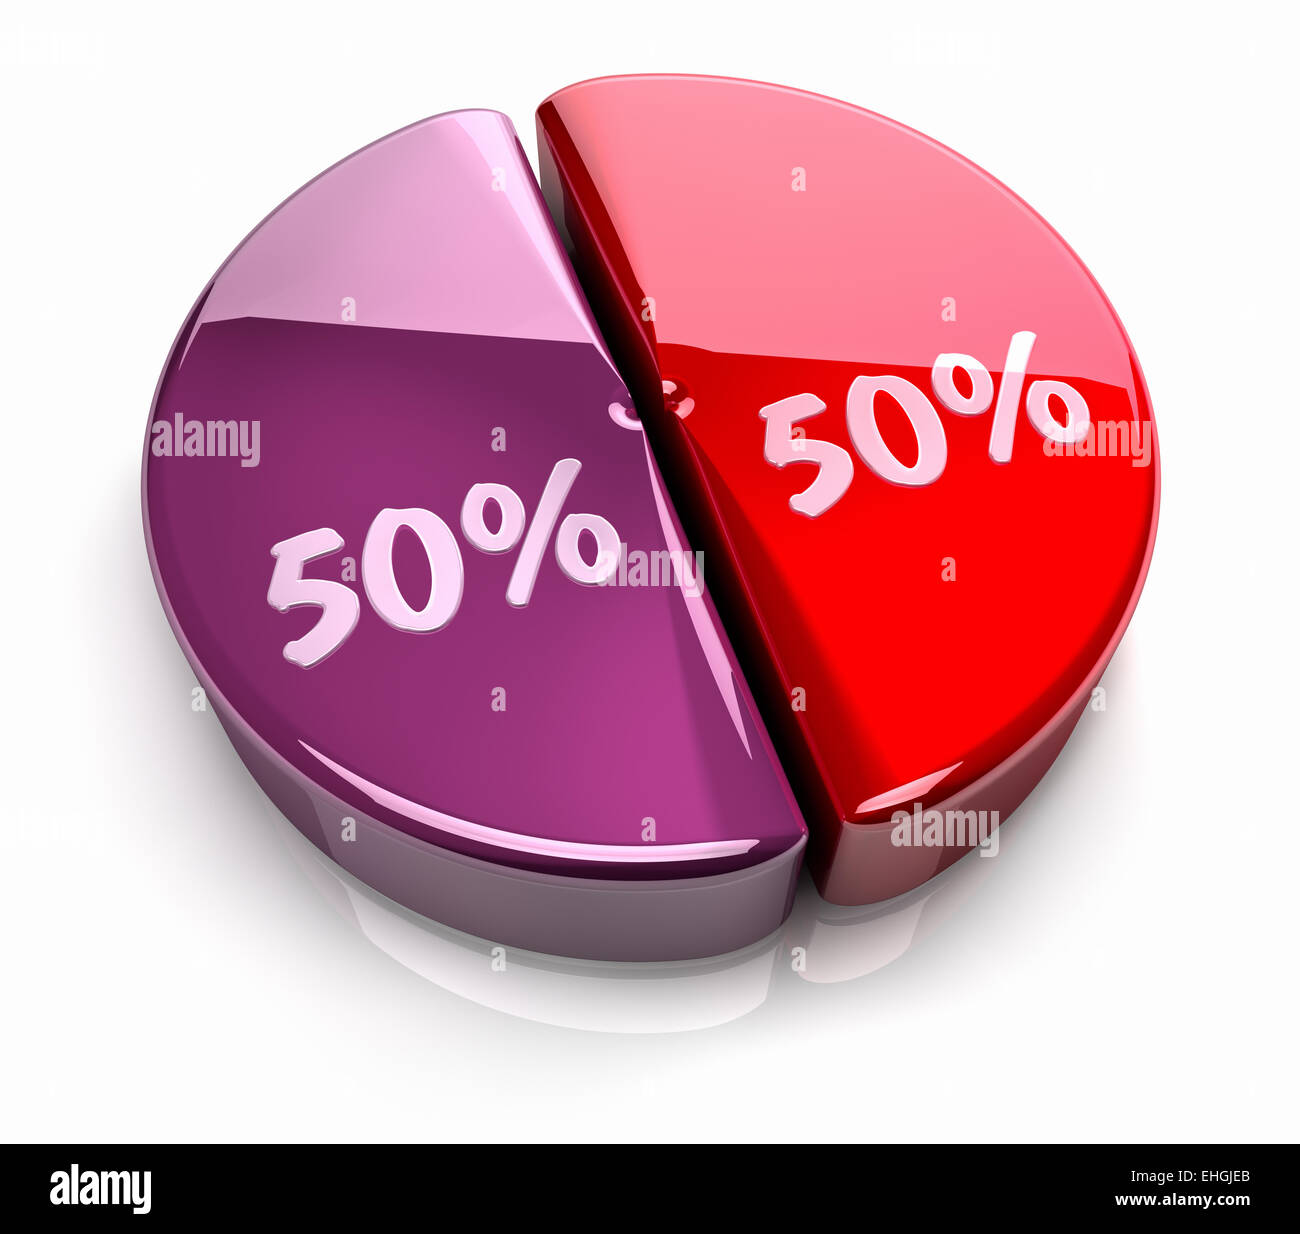 50*50 Pie Chart 50 50 Percent Stock Photo Royalty Free Image